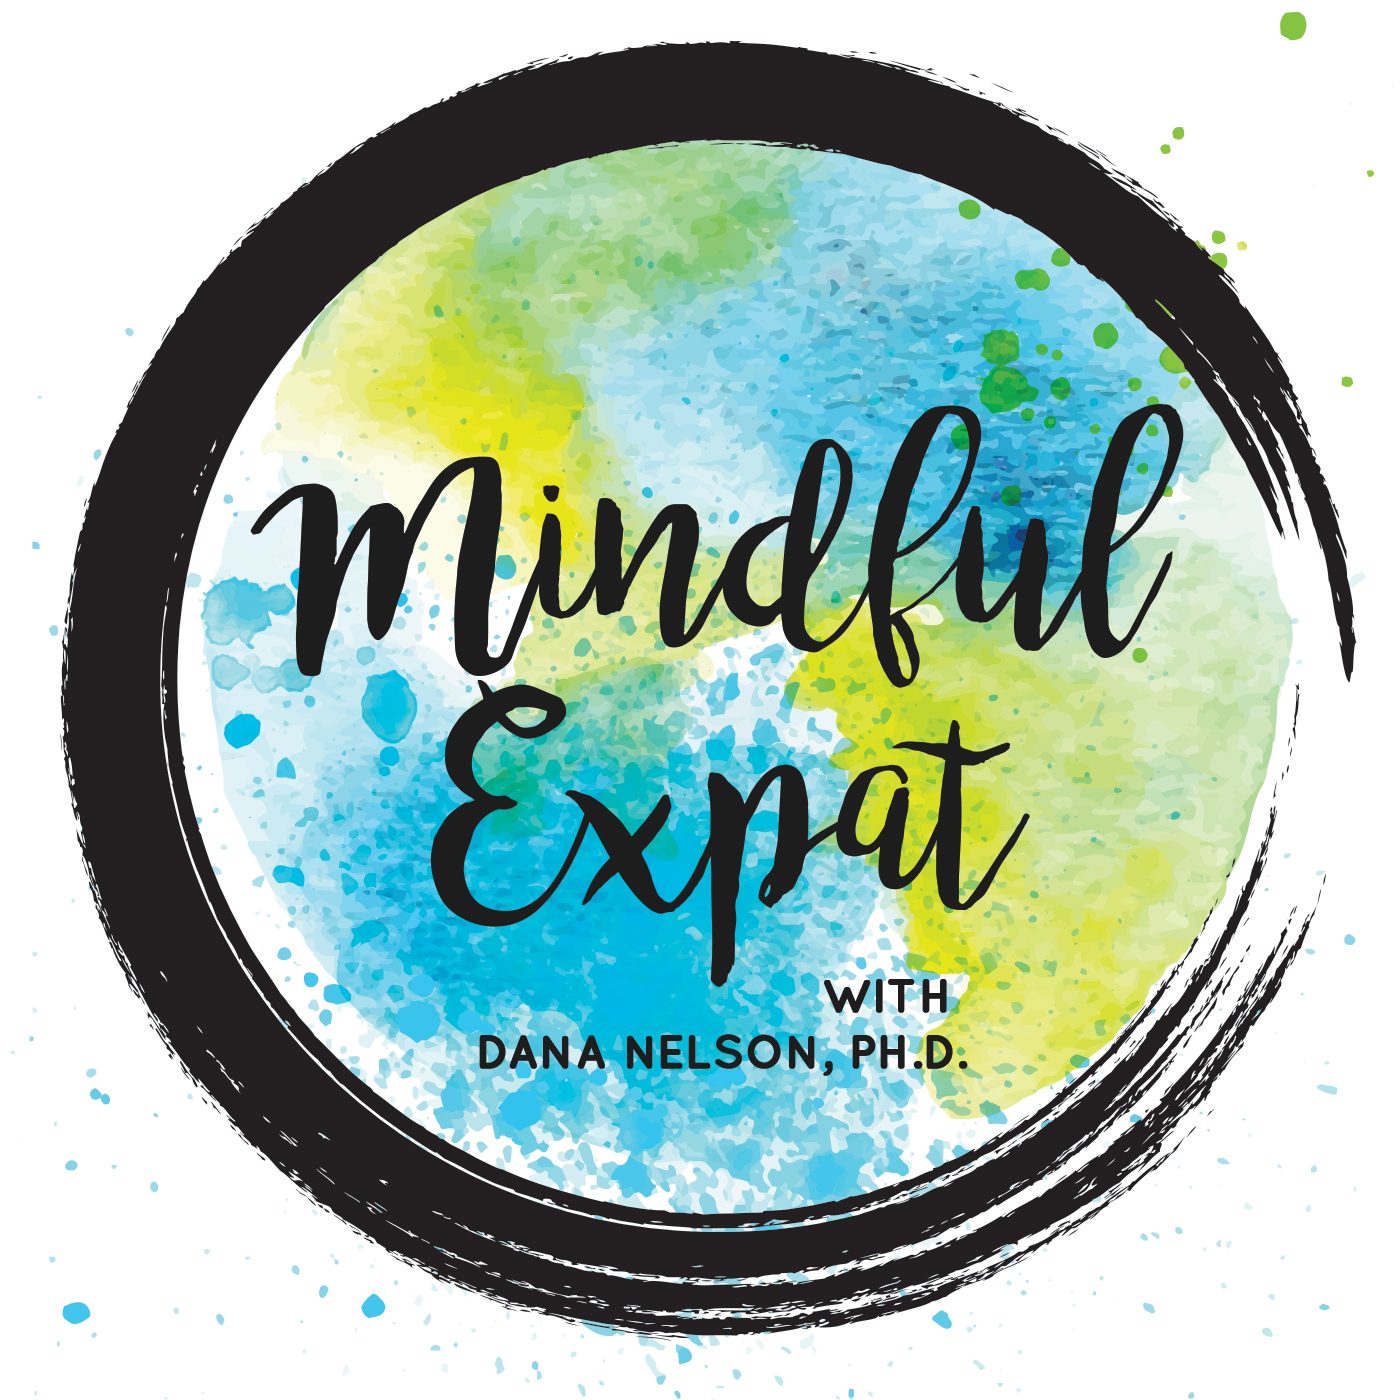 Mindful Expat, with Dana Nelson, Ph.D. show art